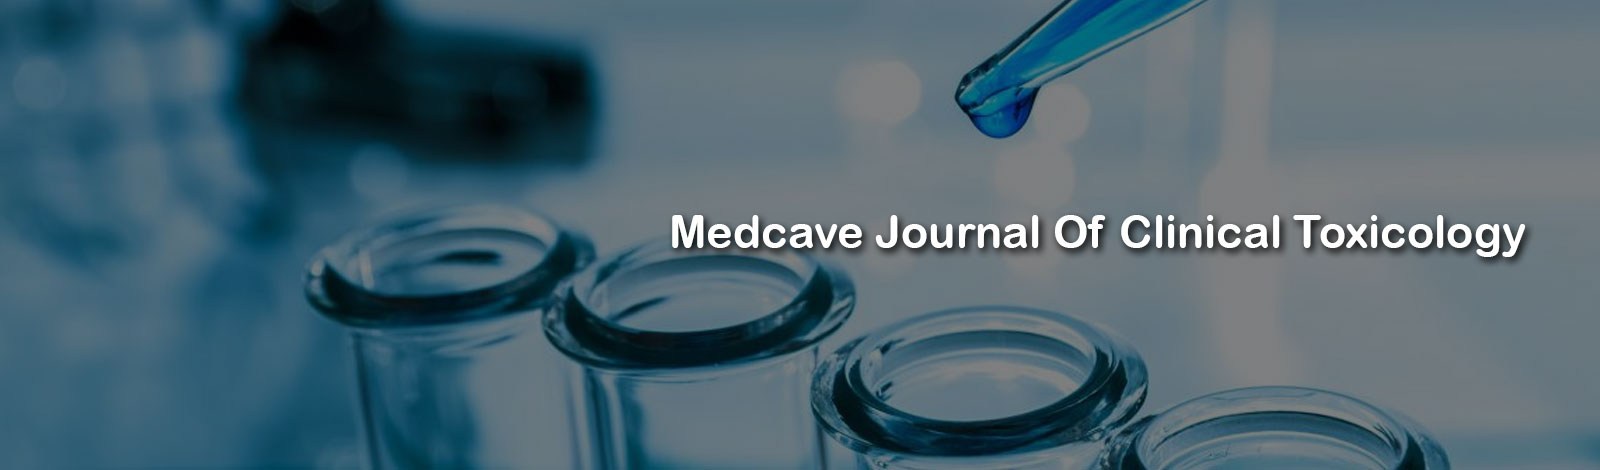 Medcave Journal of Toxicology